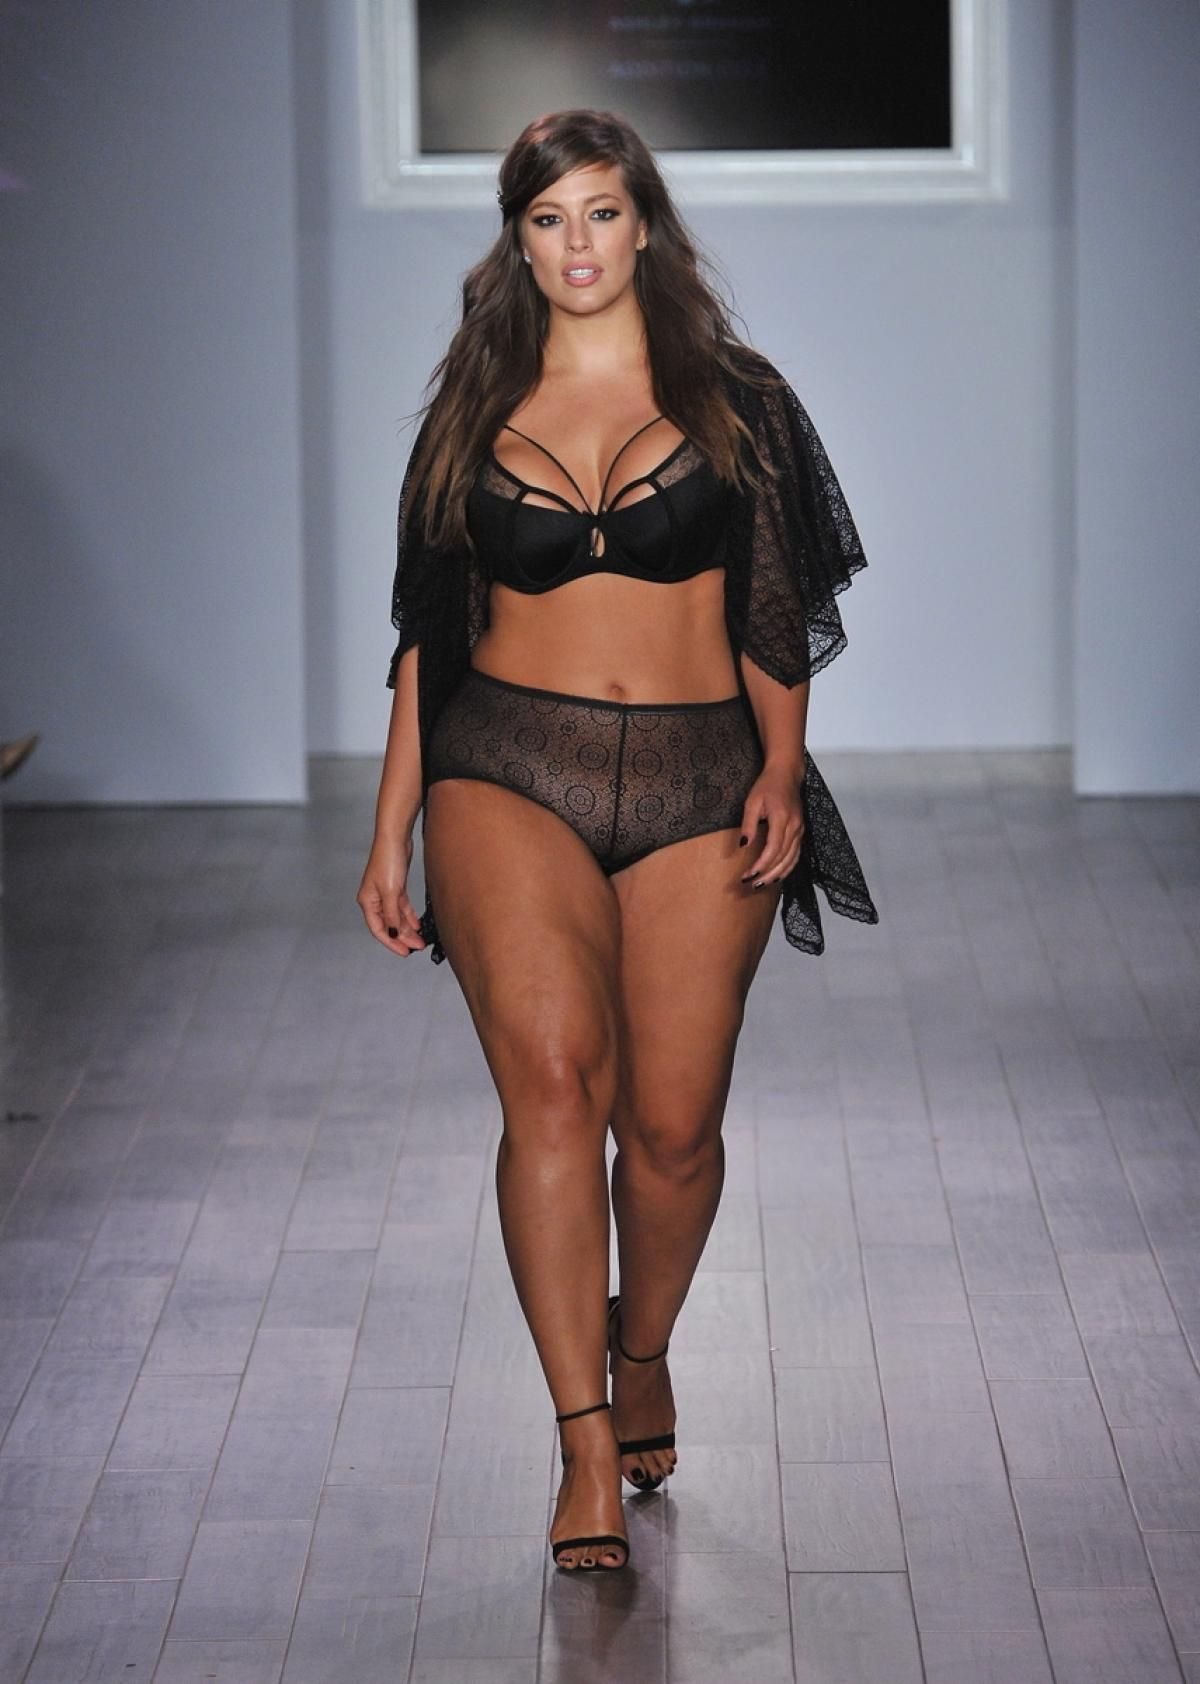 Ashley Graham models her plus-size lingerie collection during NYFW ...